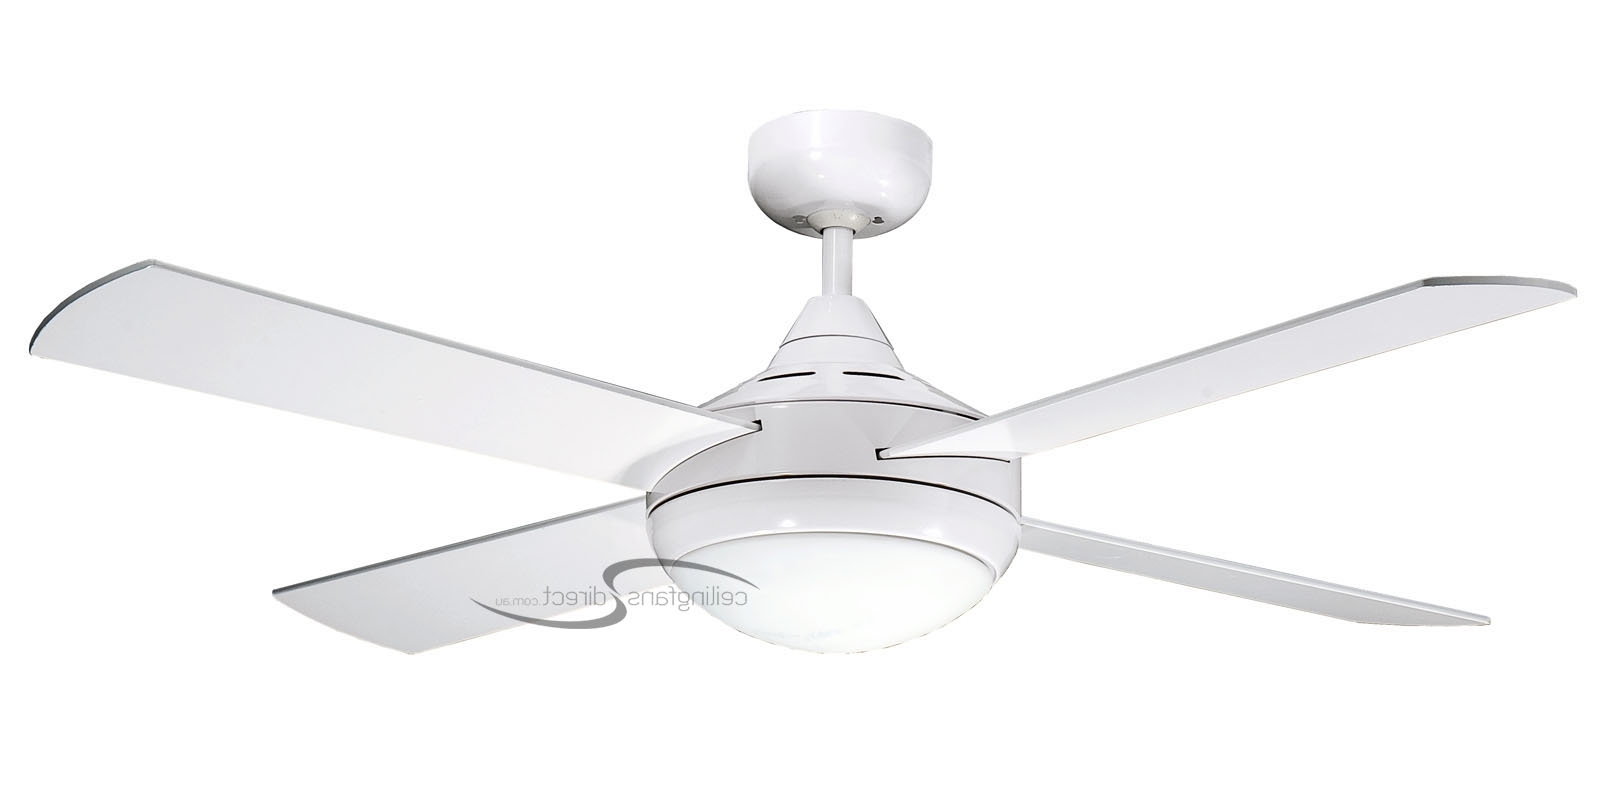 Voicesofimani Throughout 2018 Outdoor Ceiling Fans With Remote Control Lights (View 13 of 20)